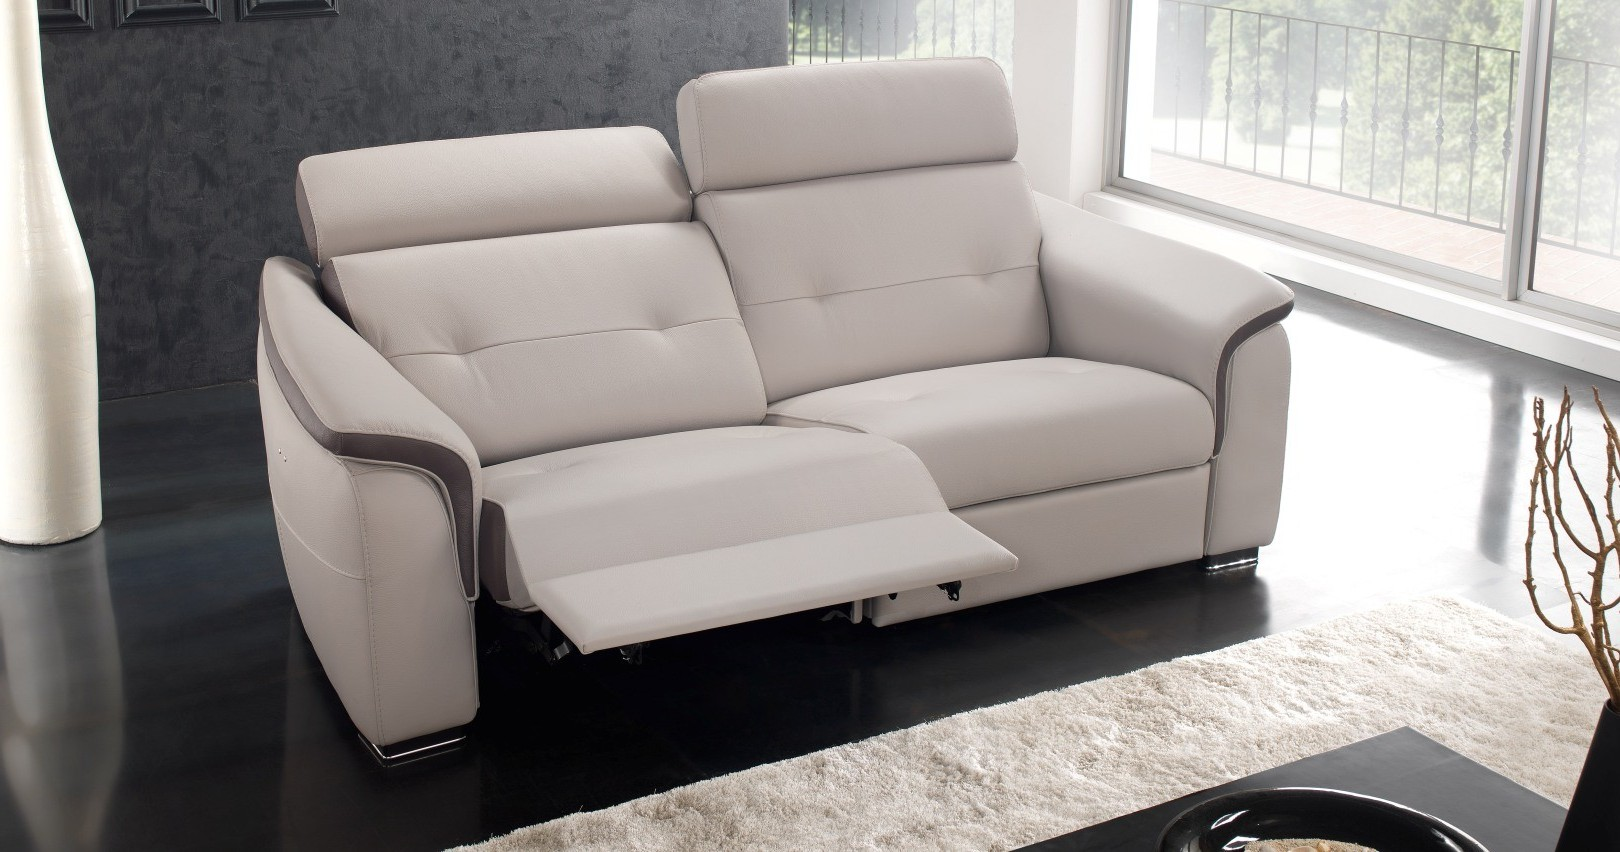 Canape cuir relax electrique fly canap id es de - Canape fly cuir ...